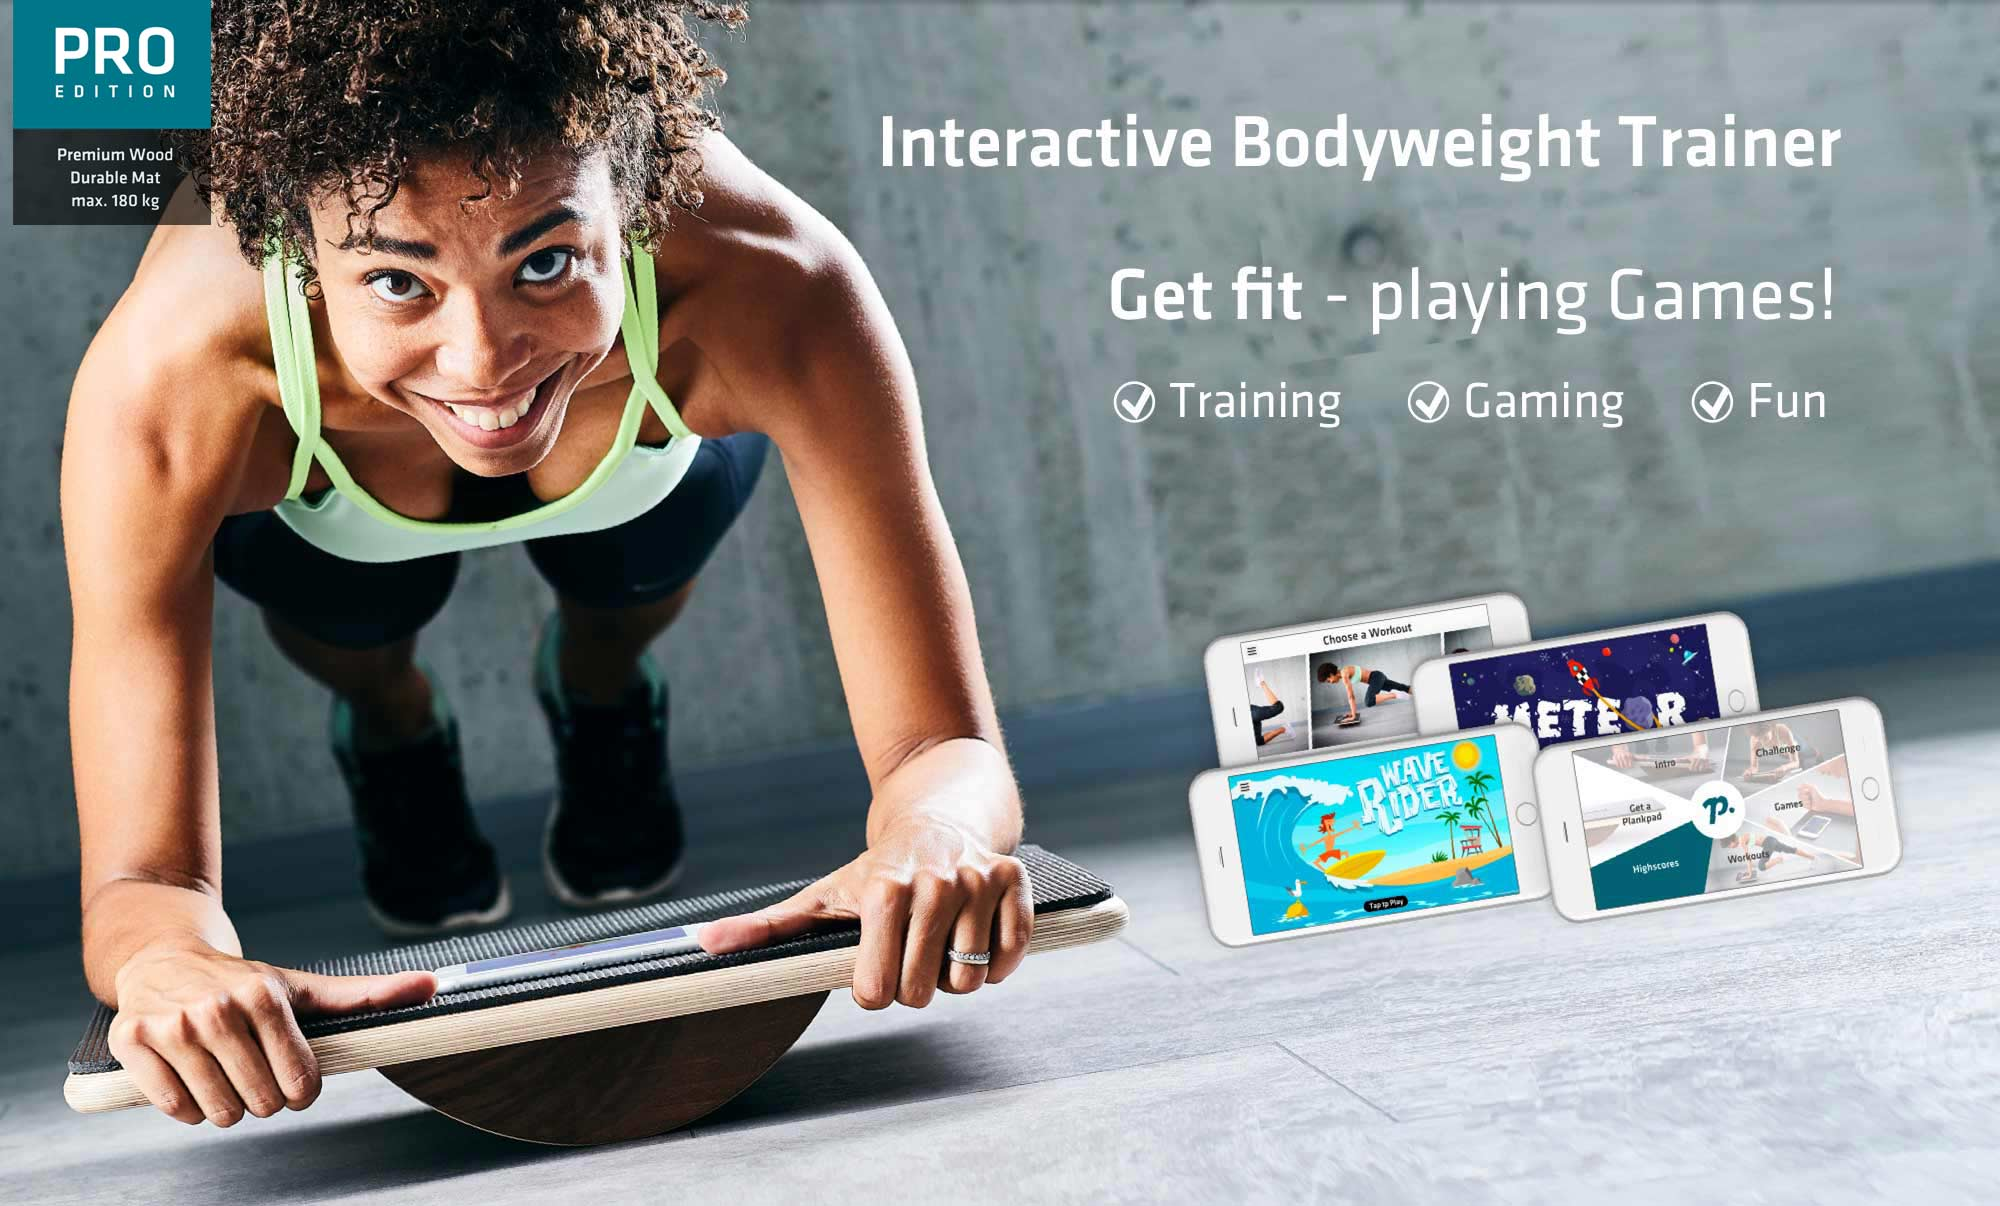 Your Interactive Bodyweight Trainer